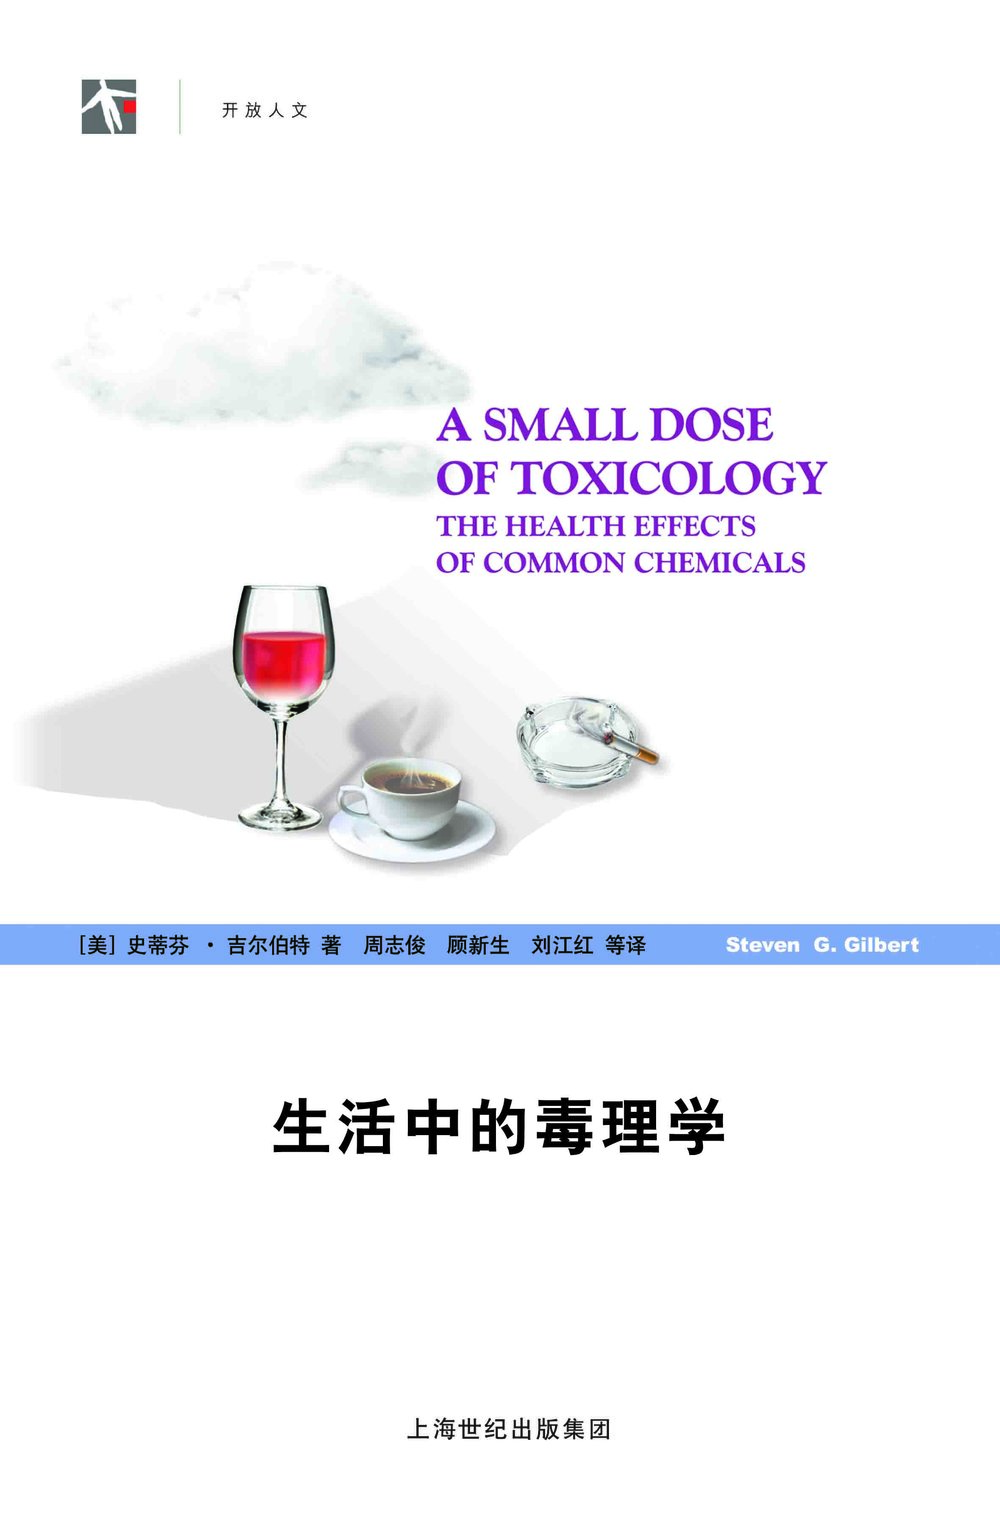 A Small Dose of Toxicology -Chinese version.jpg